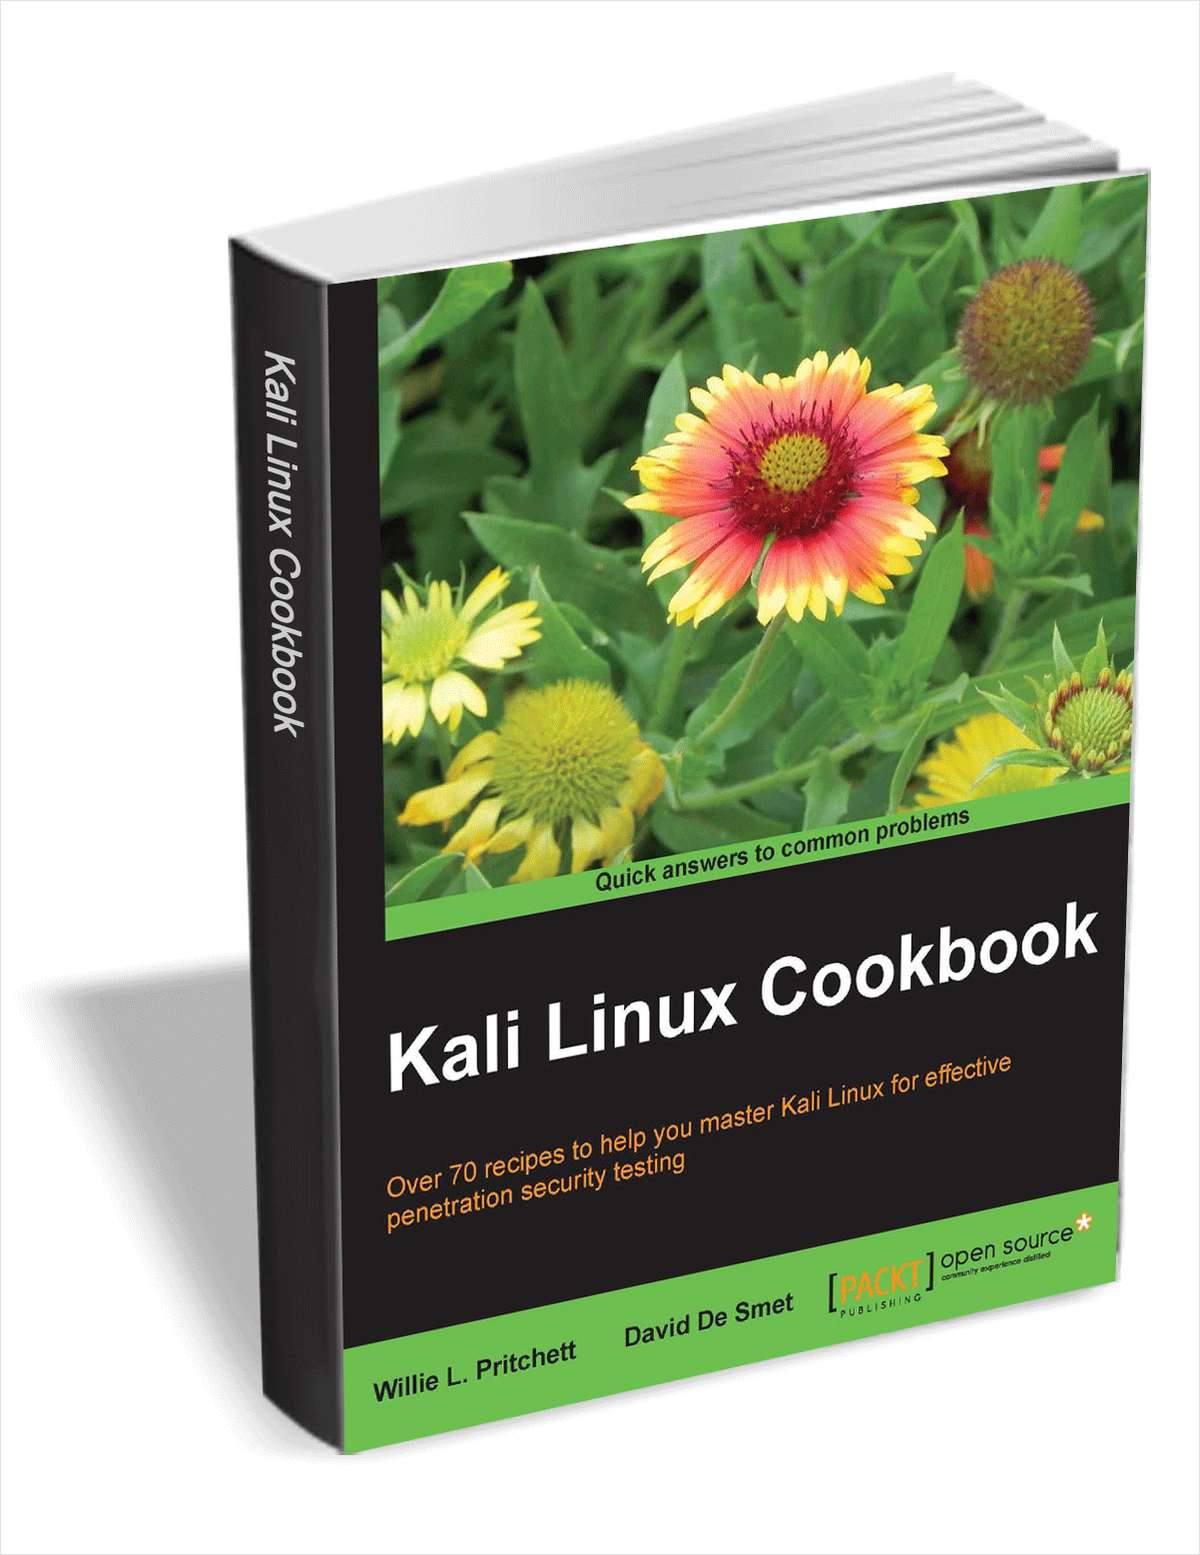 Hone your penetration testing skills using 70+ recipes from the Kali Linux Cookbook